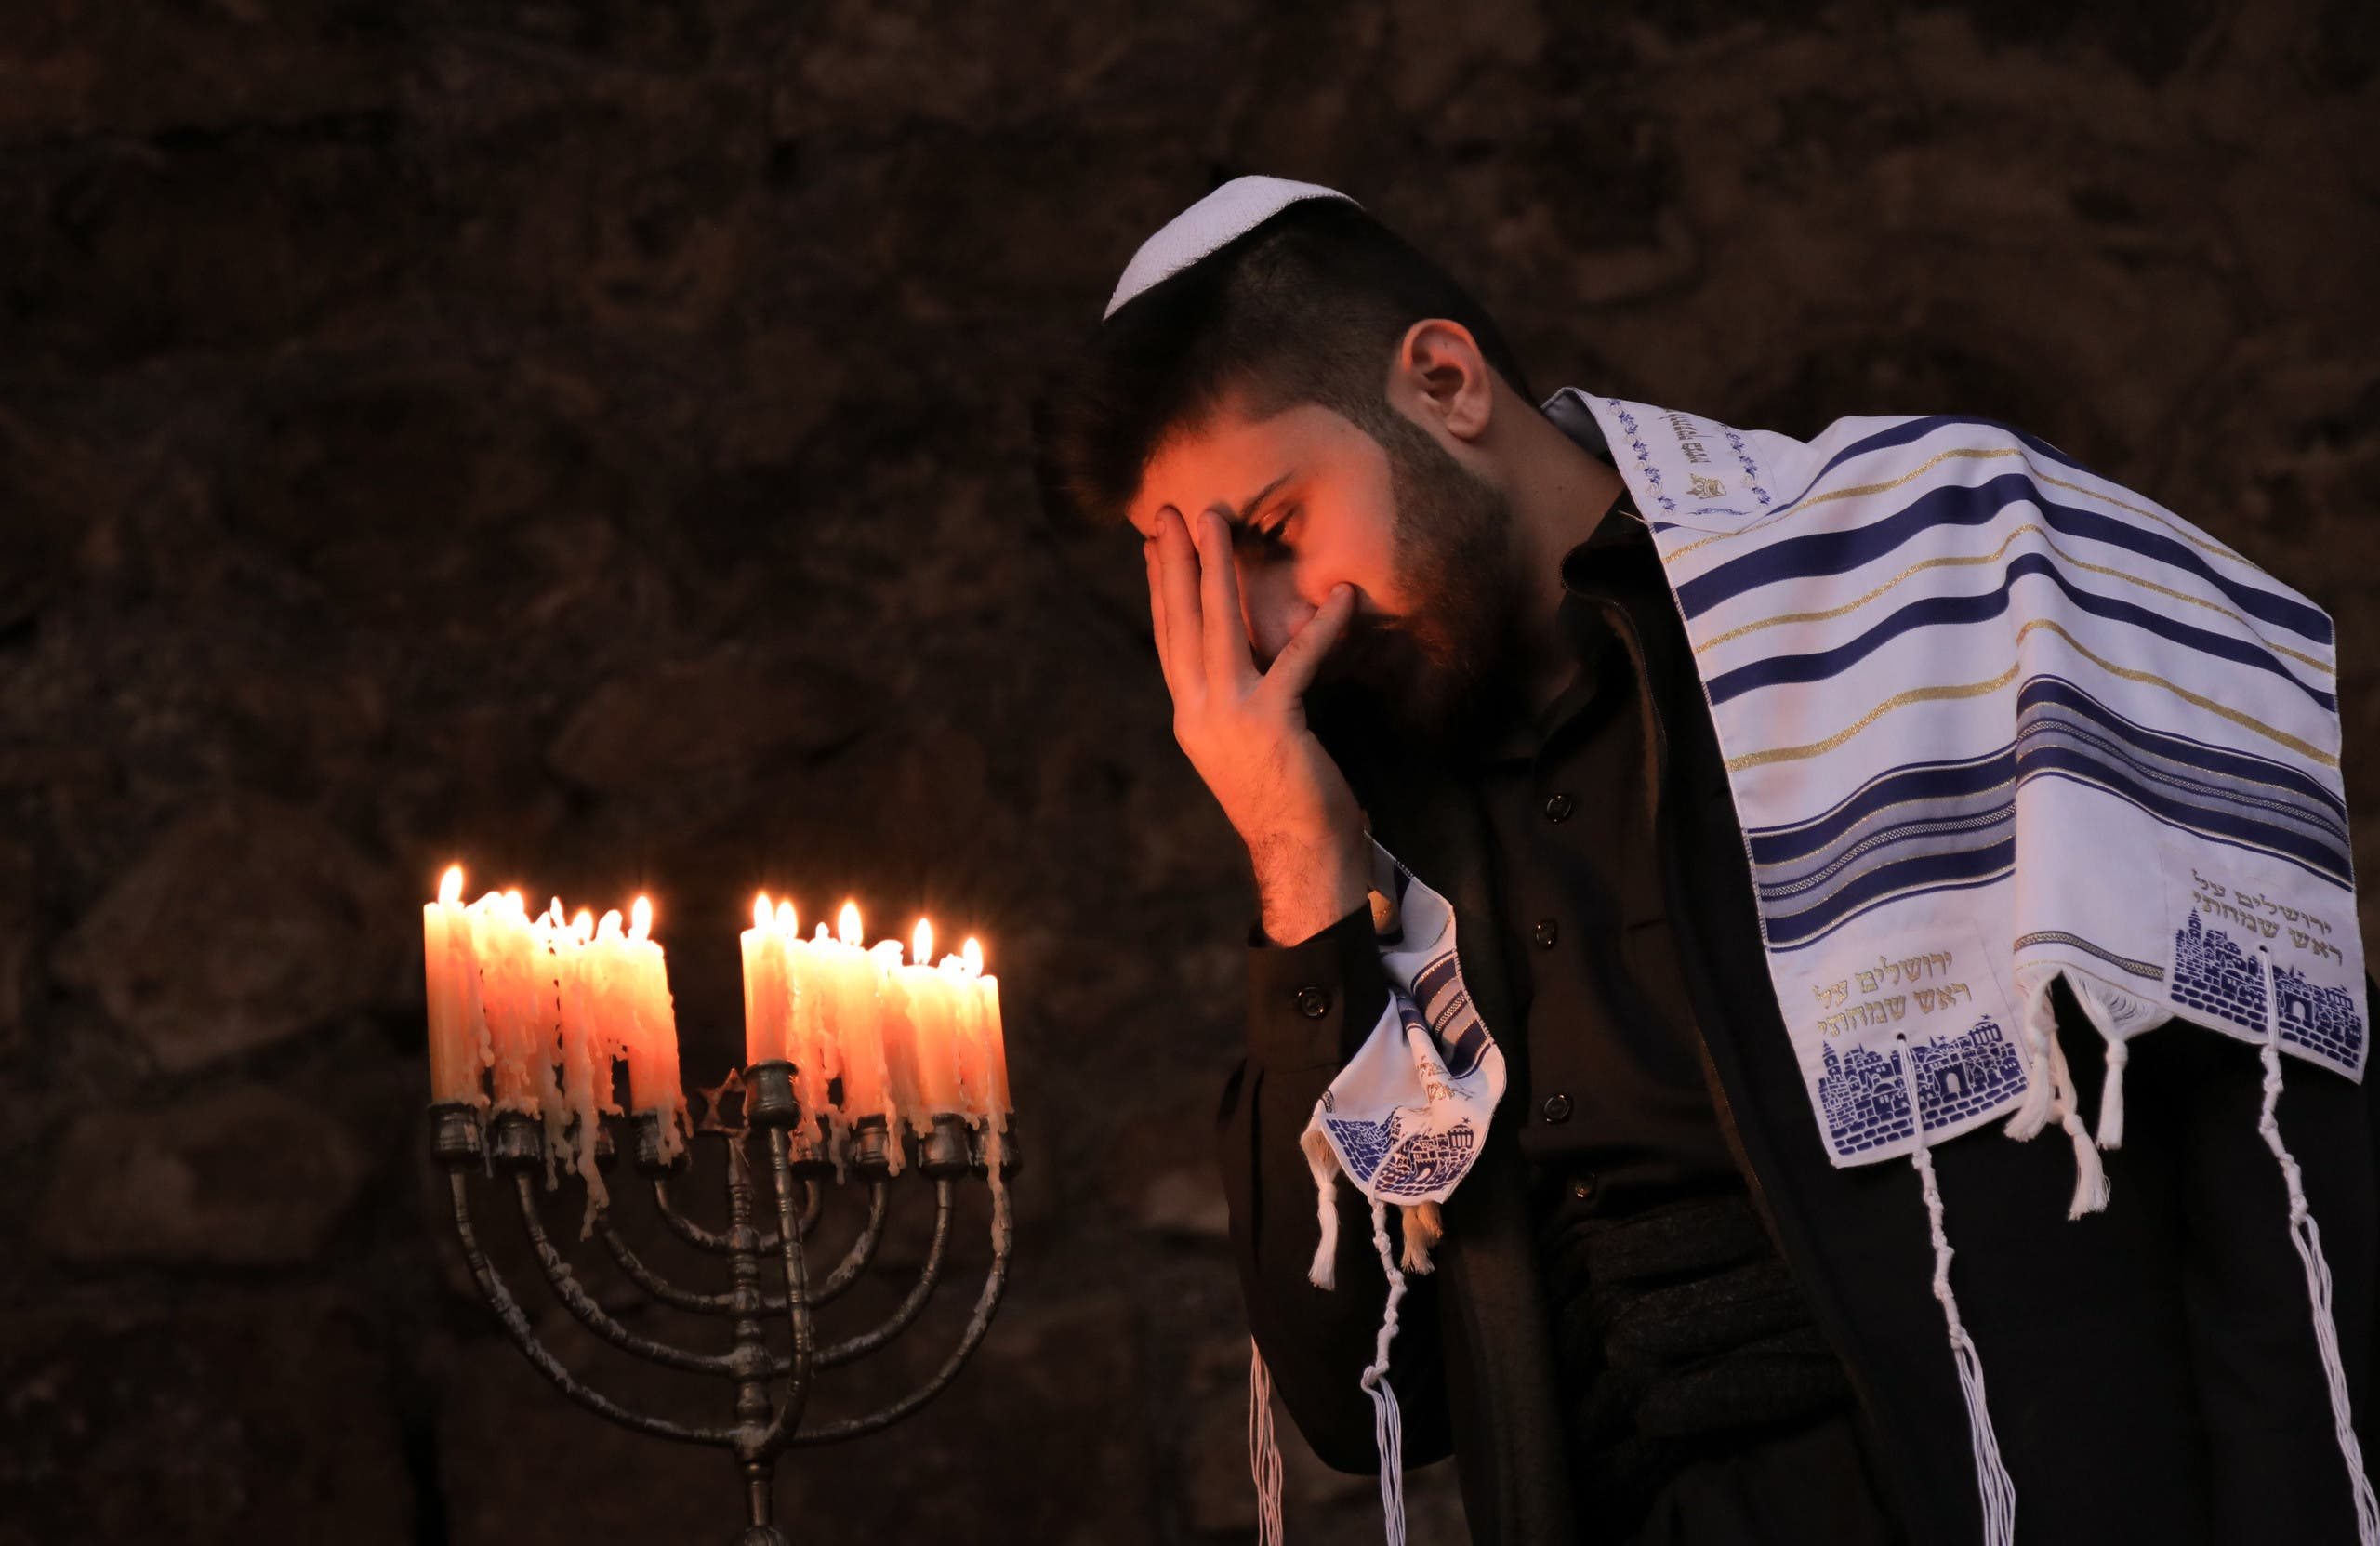 A member of Iraq's Kurdish Jewish community takes part in a ceremony on the last night of the Jewish holiday of Hanukkah in the Iraqi town of Al-Qosh, 50km north of Mosul city, on December 29, 2019. (File photo: AFP)